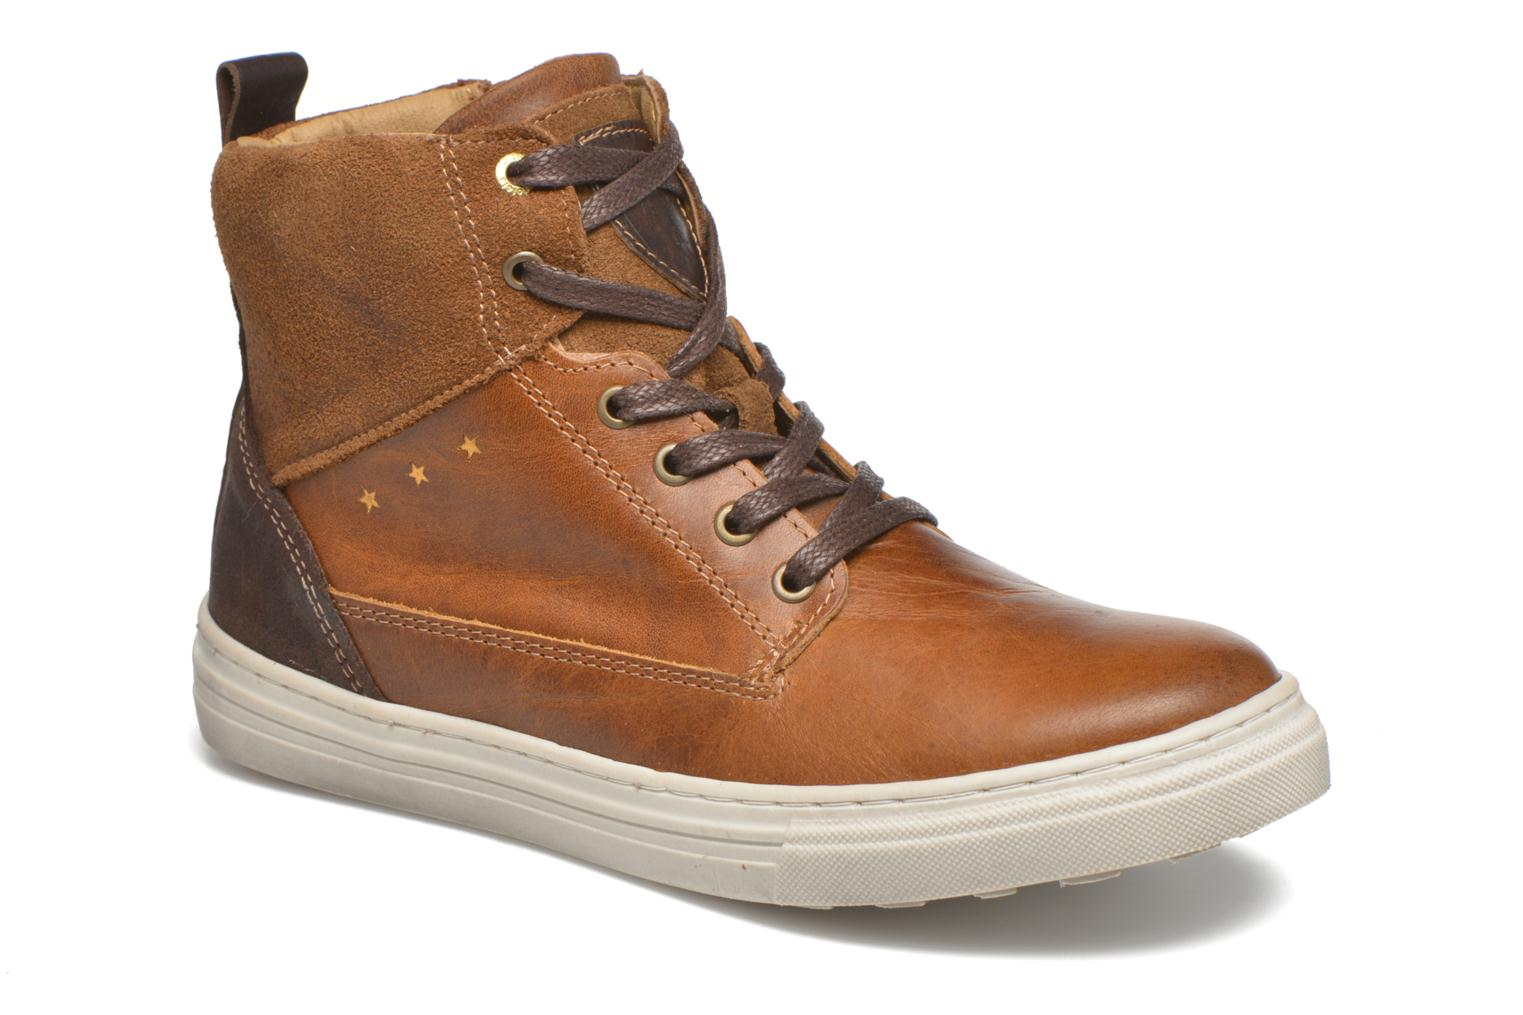 Baskets Pantofola d'Oro Benevento II mid JR Marron vue détail/paire